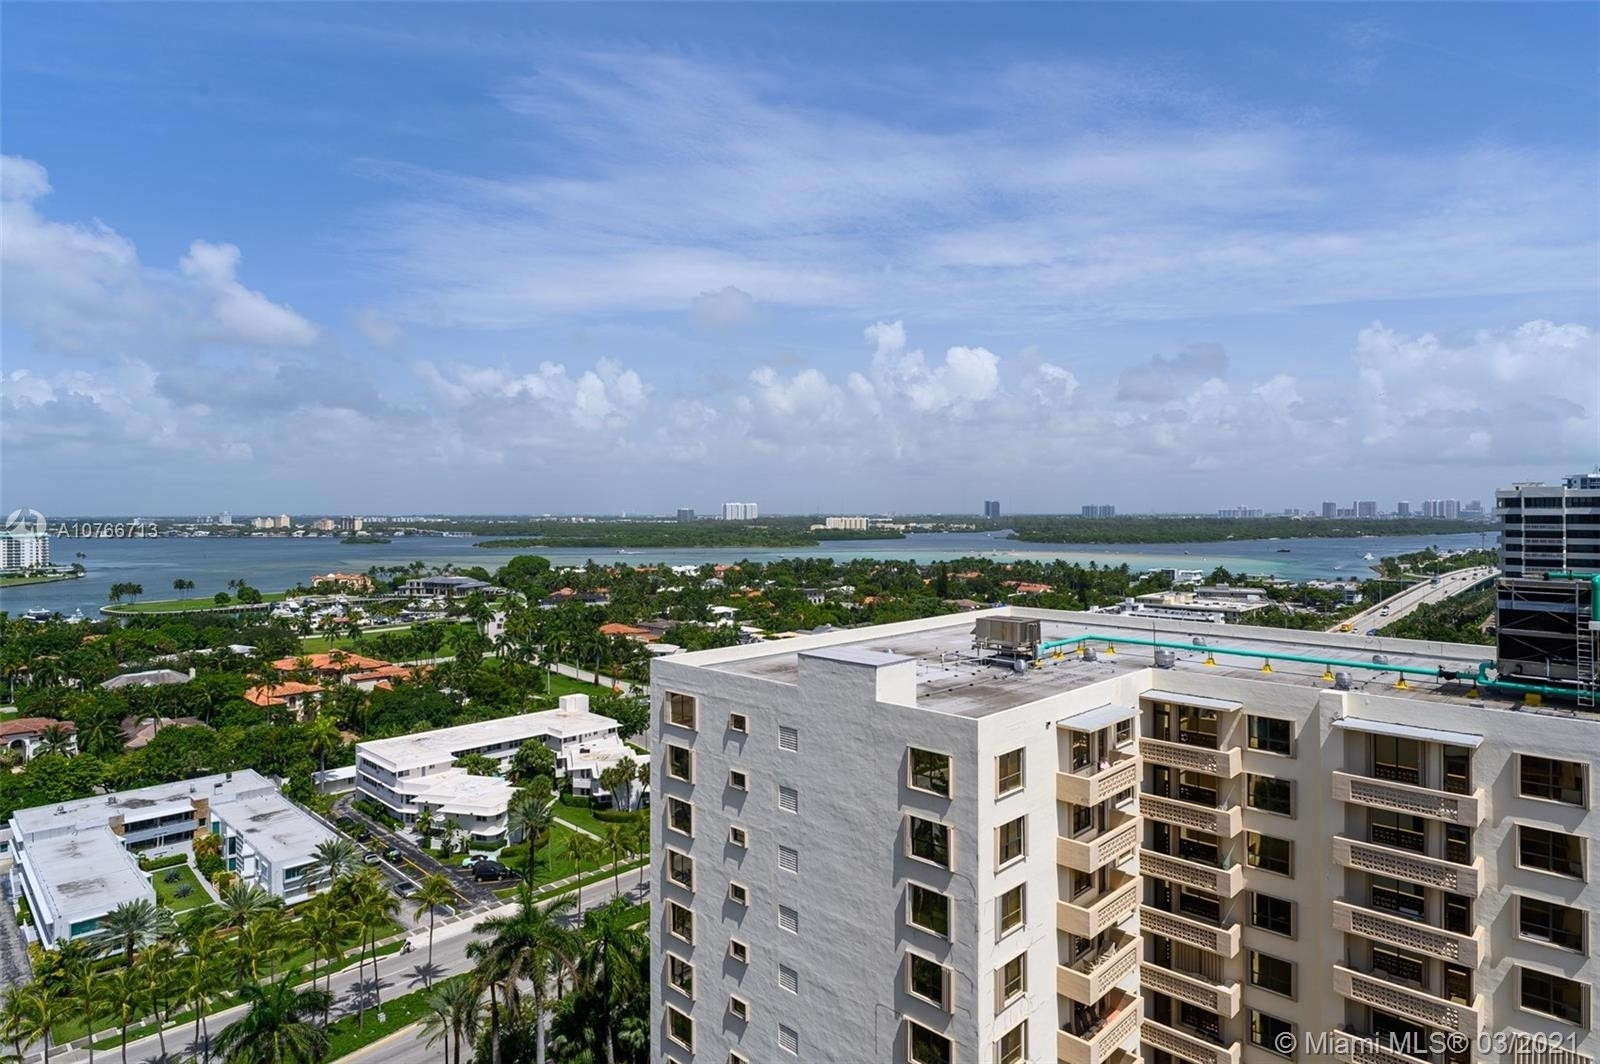 4. Condominiums for Sale at 10175 Collins Ave , PH5 Bal Harbour, FL 33154